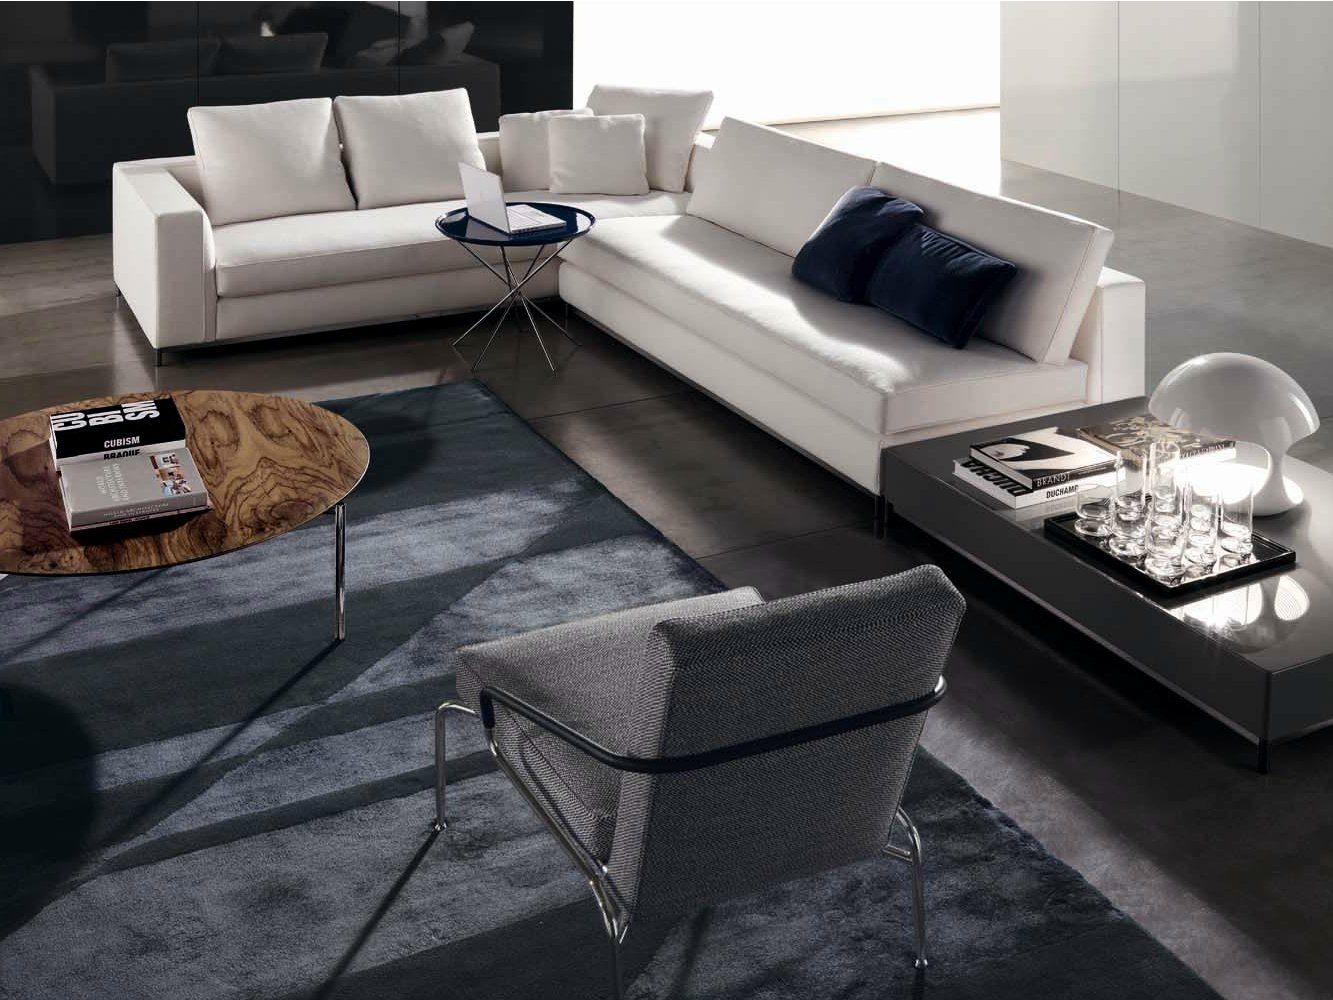 Albers classic canap d 39 angle by minotti - Canape d angle vintage ...